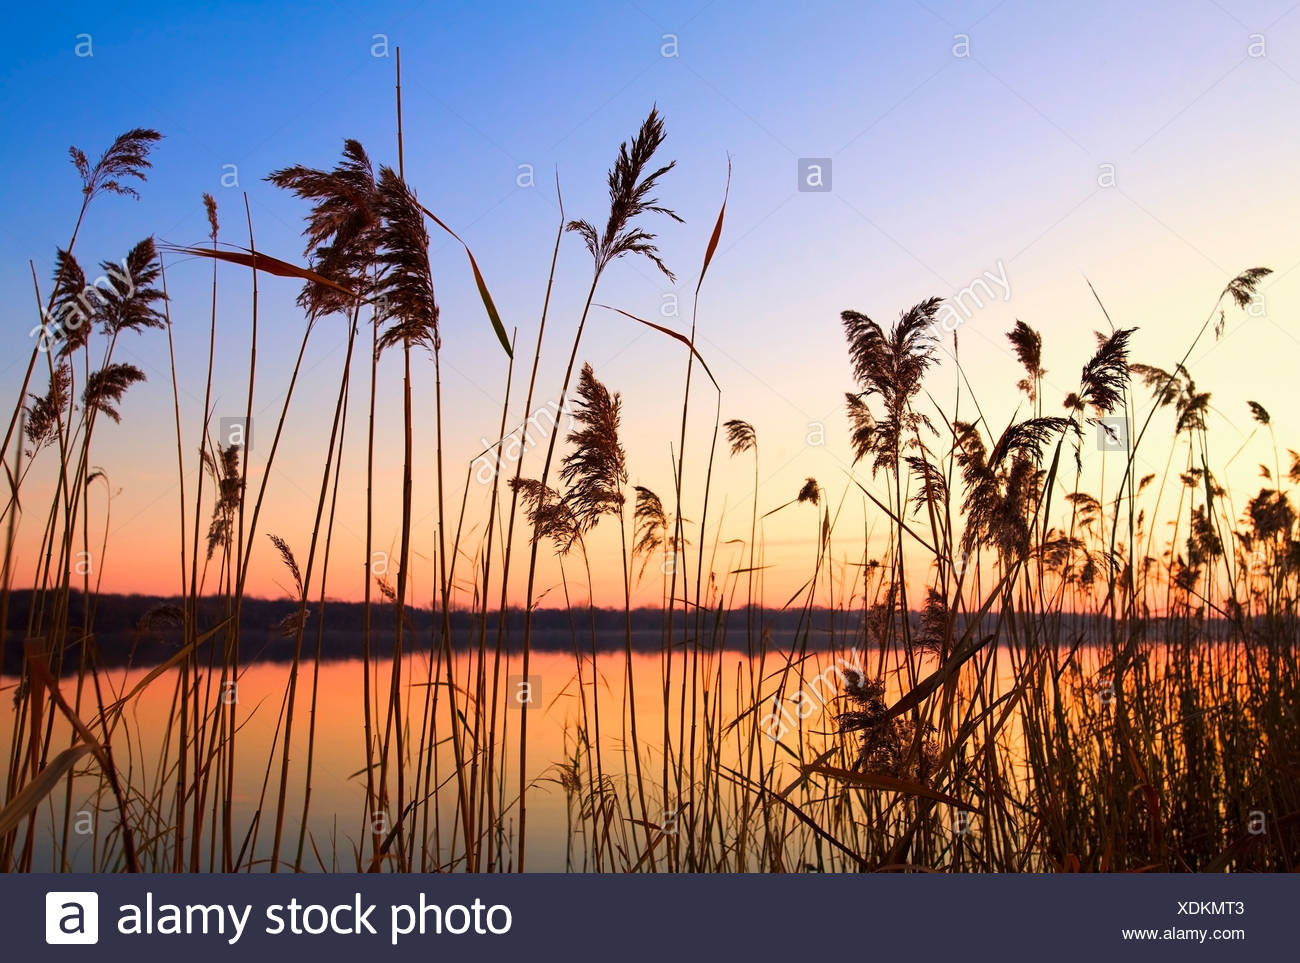 Willmar, Minnesota, United States Of America;; Tall Grass Along The Shoreline At Sunset - Stock Image